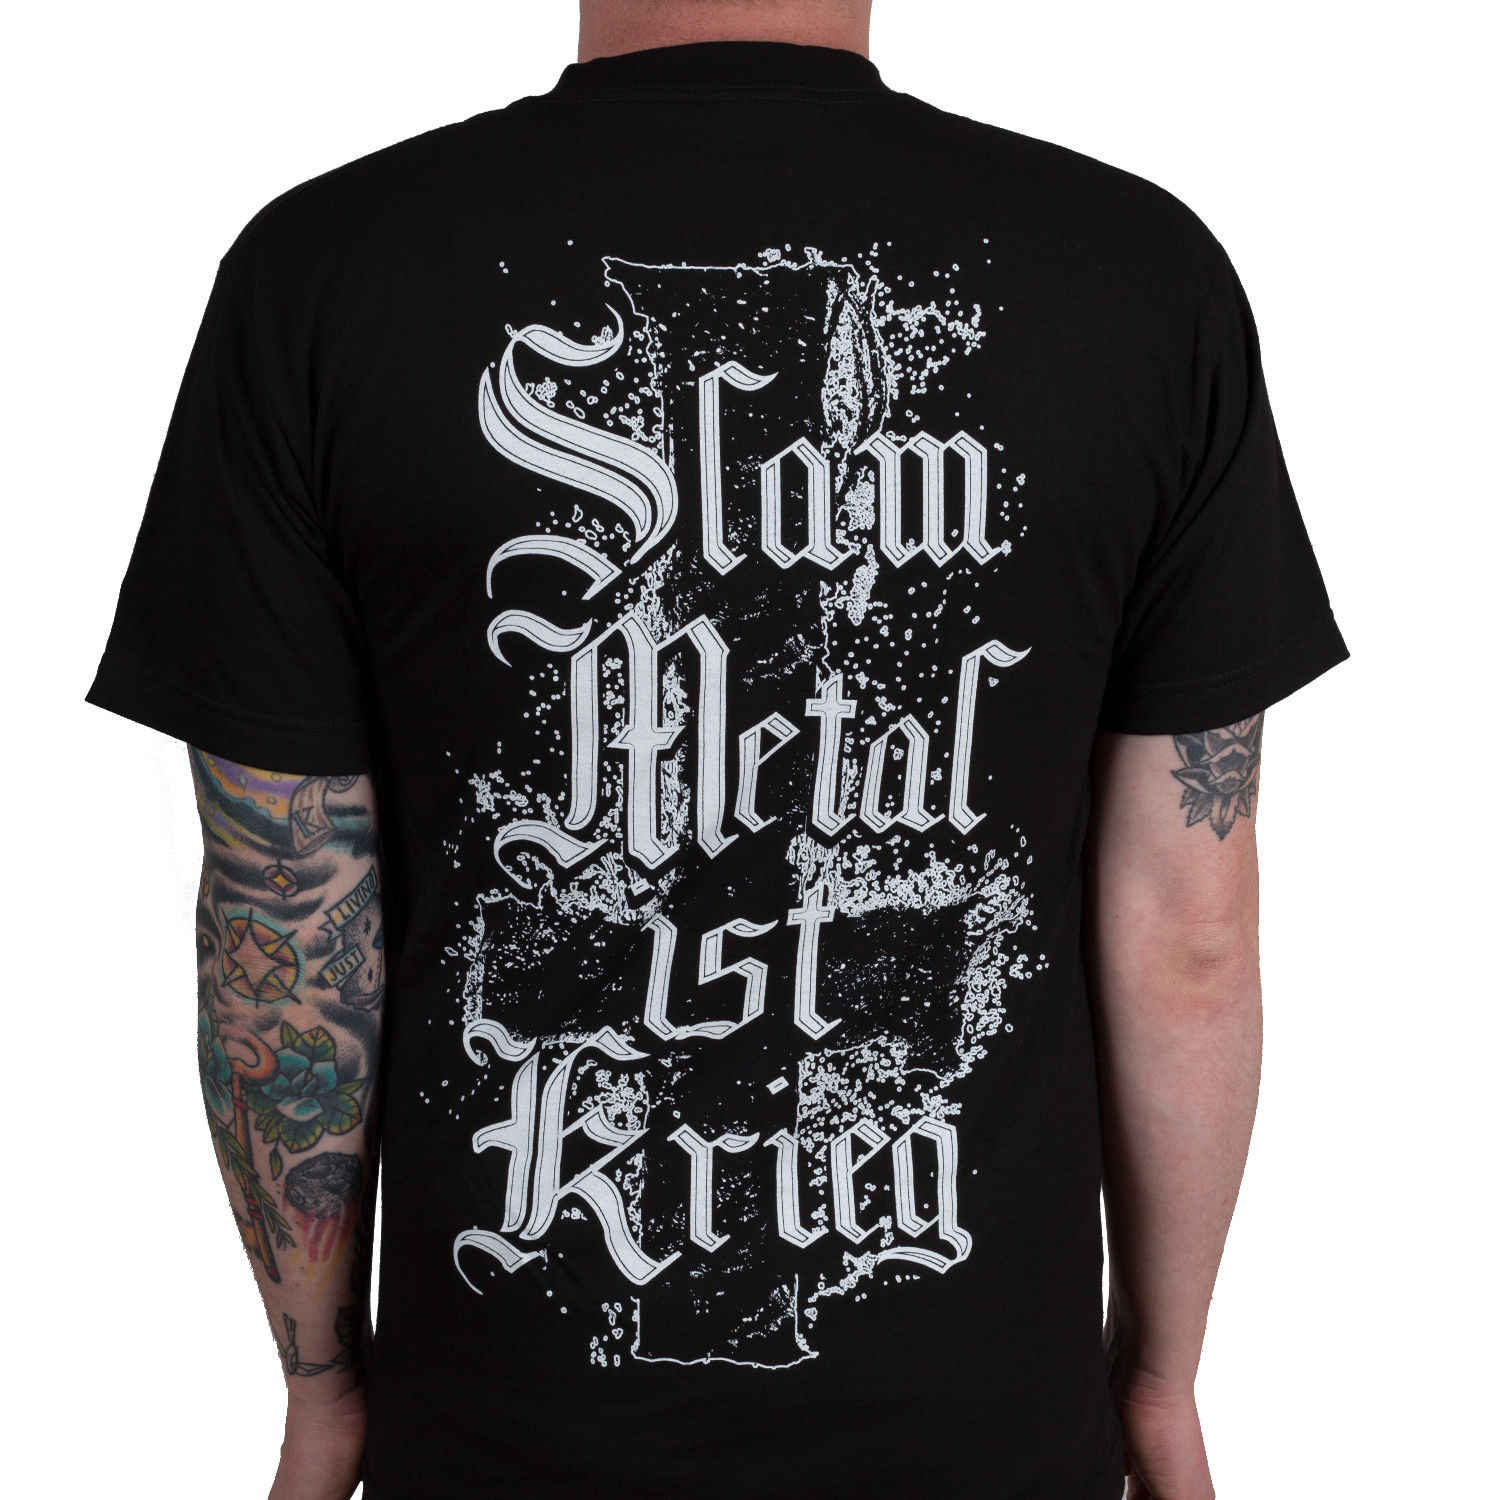 Authentic INGESTED Band Slam Metal Ist Krieg Deathcore T-Shirt NEW Unisex  Fashion T- abae89e4a204